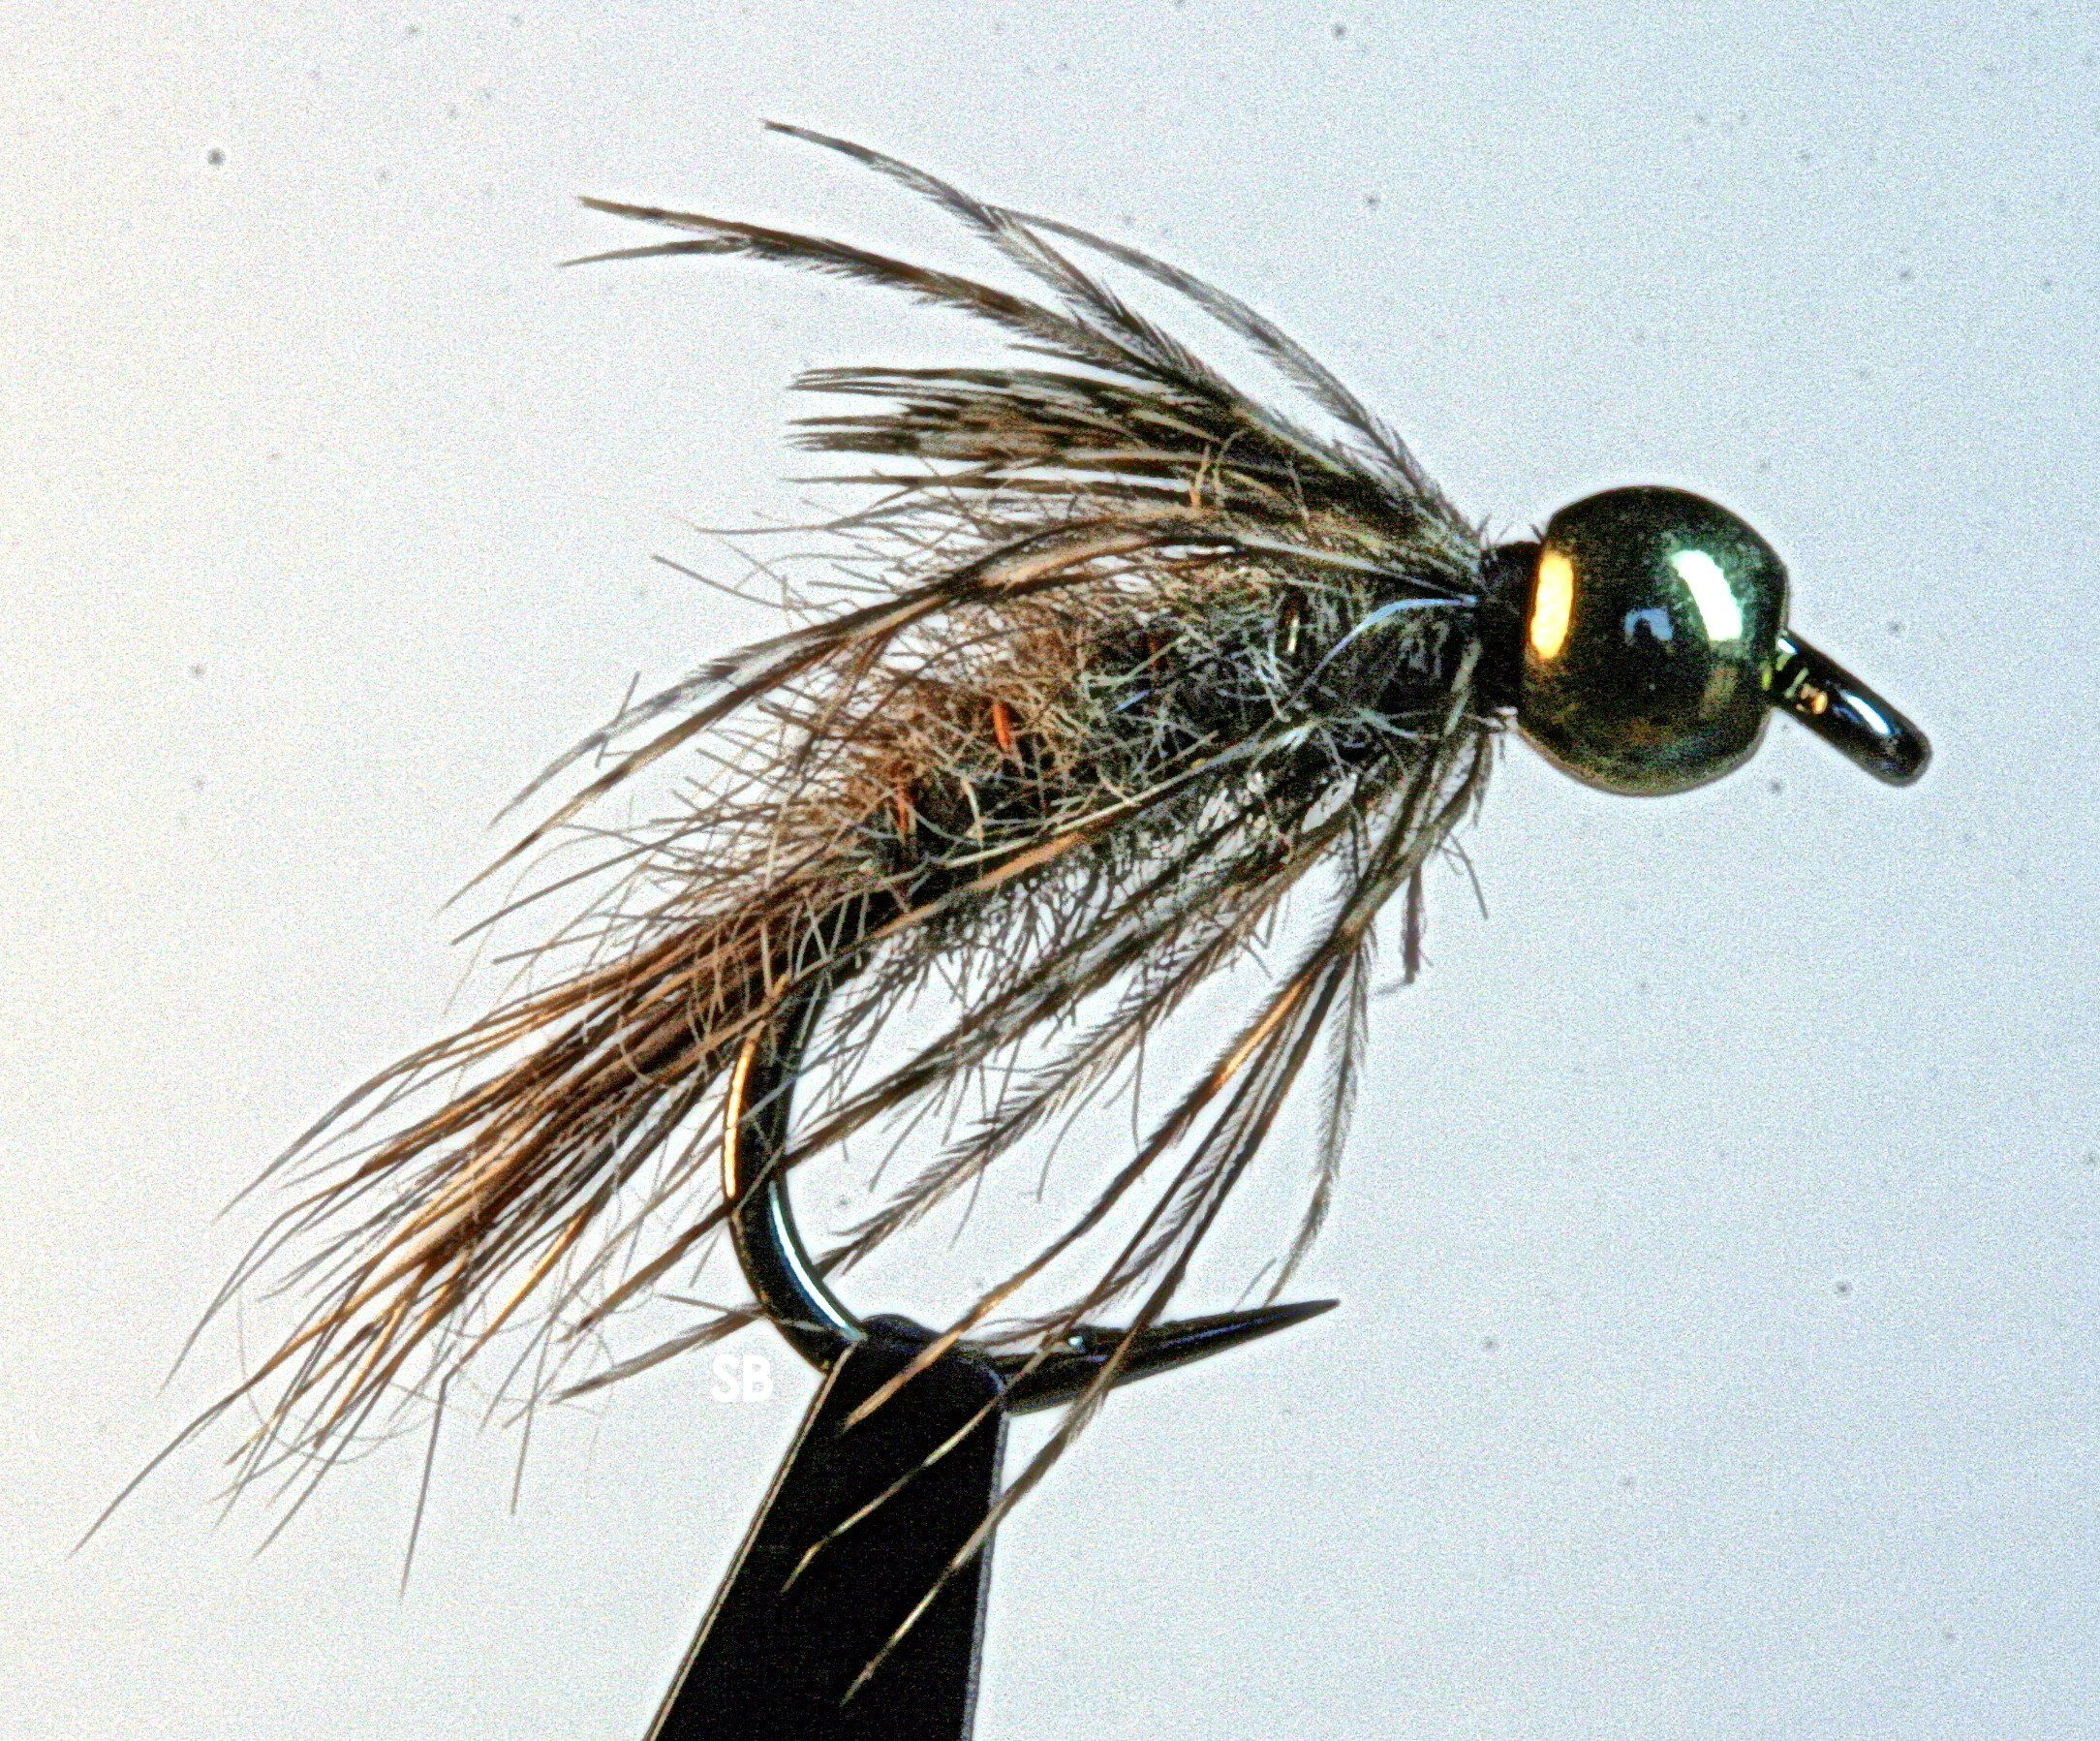 17 best images about fly fishing on pinterest | herons, fly, Fly Fishing Bait